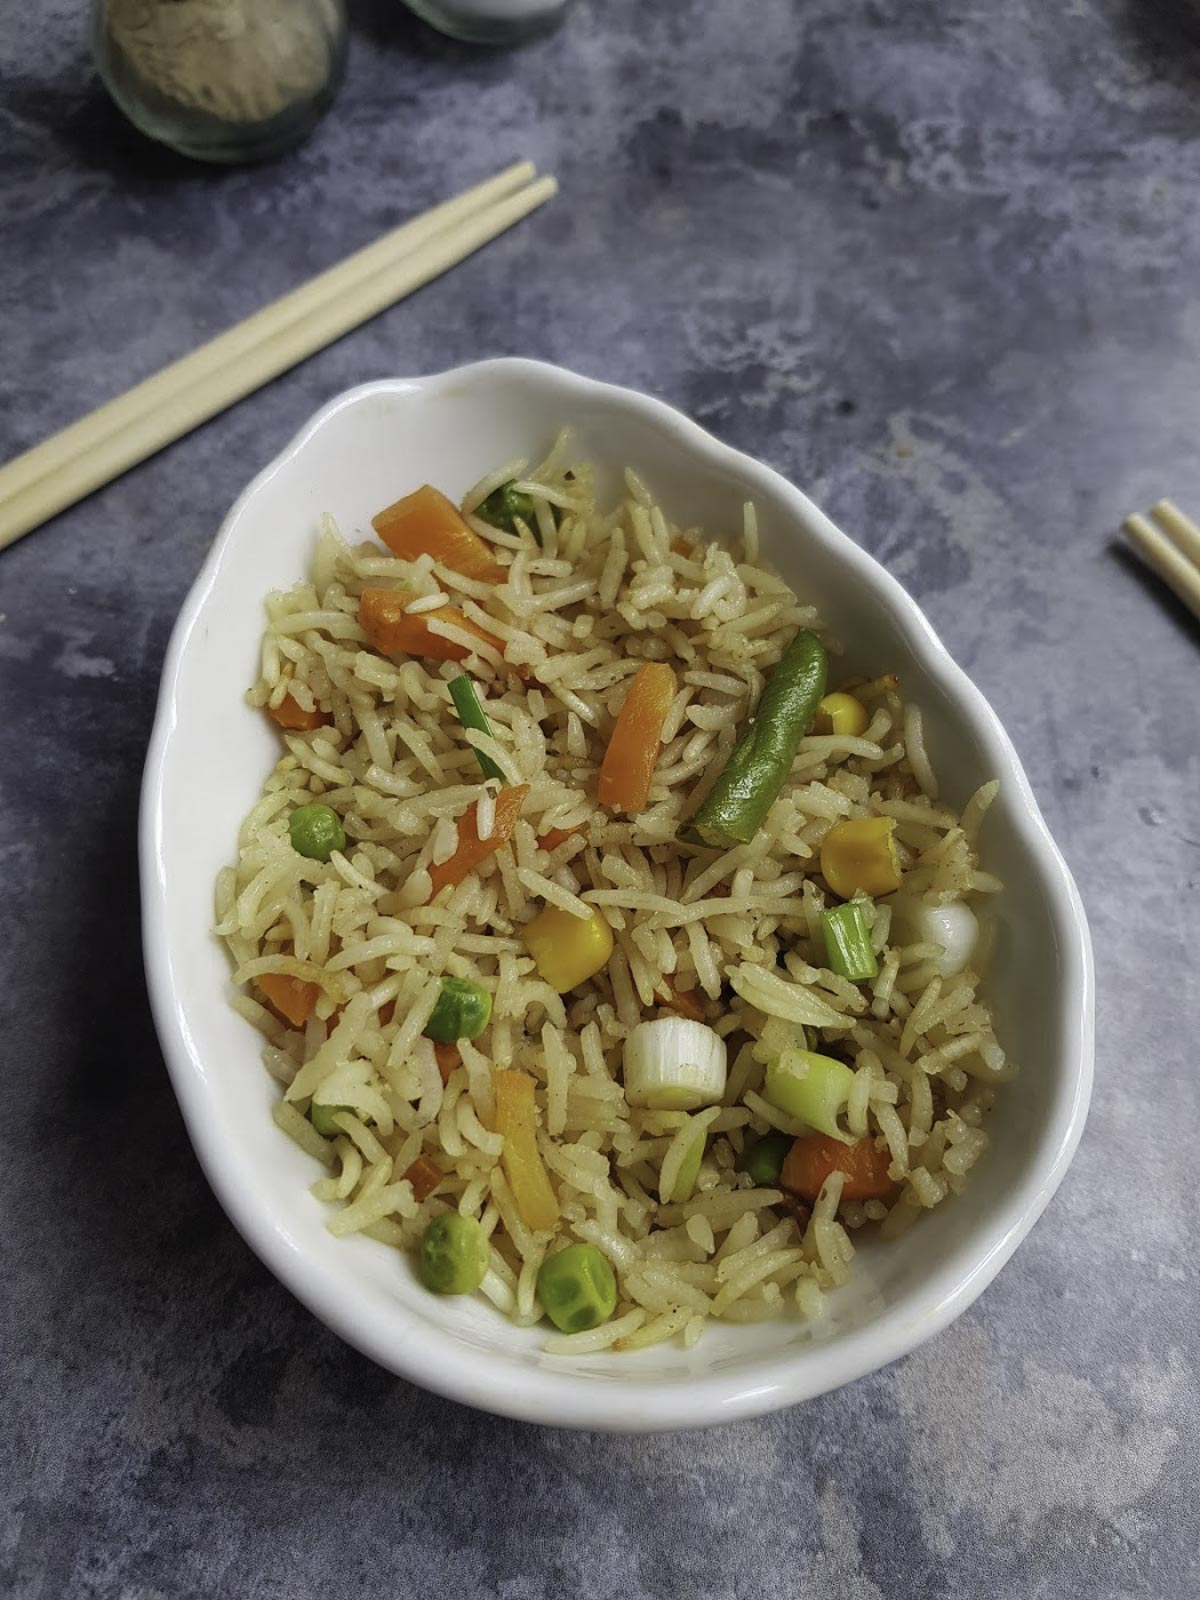 a small bowl of fried rice served with chopsticks in the background